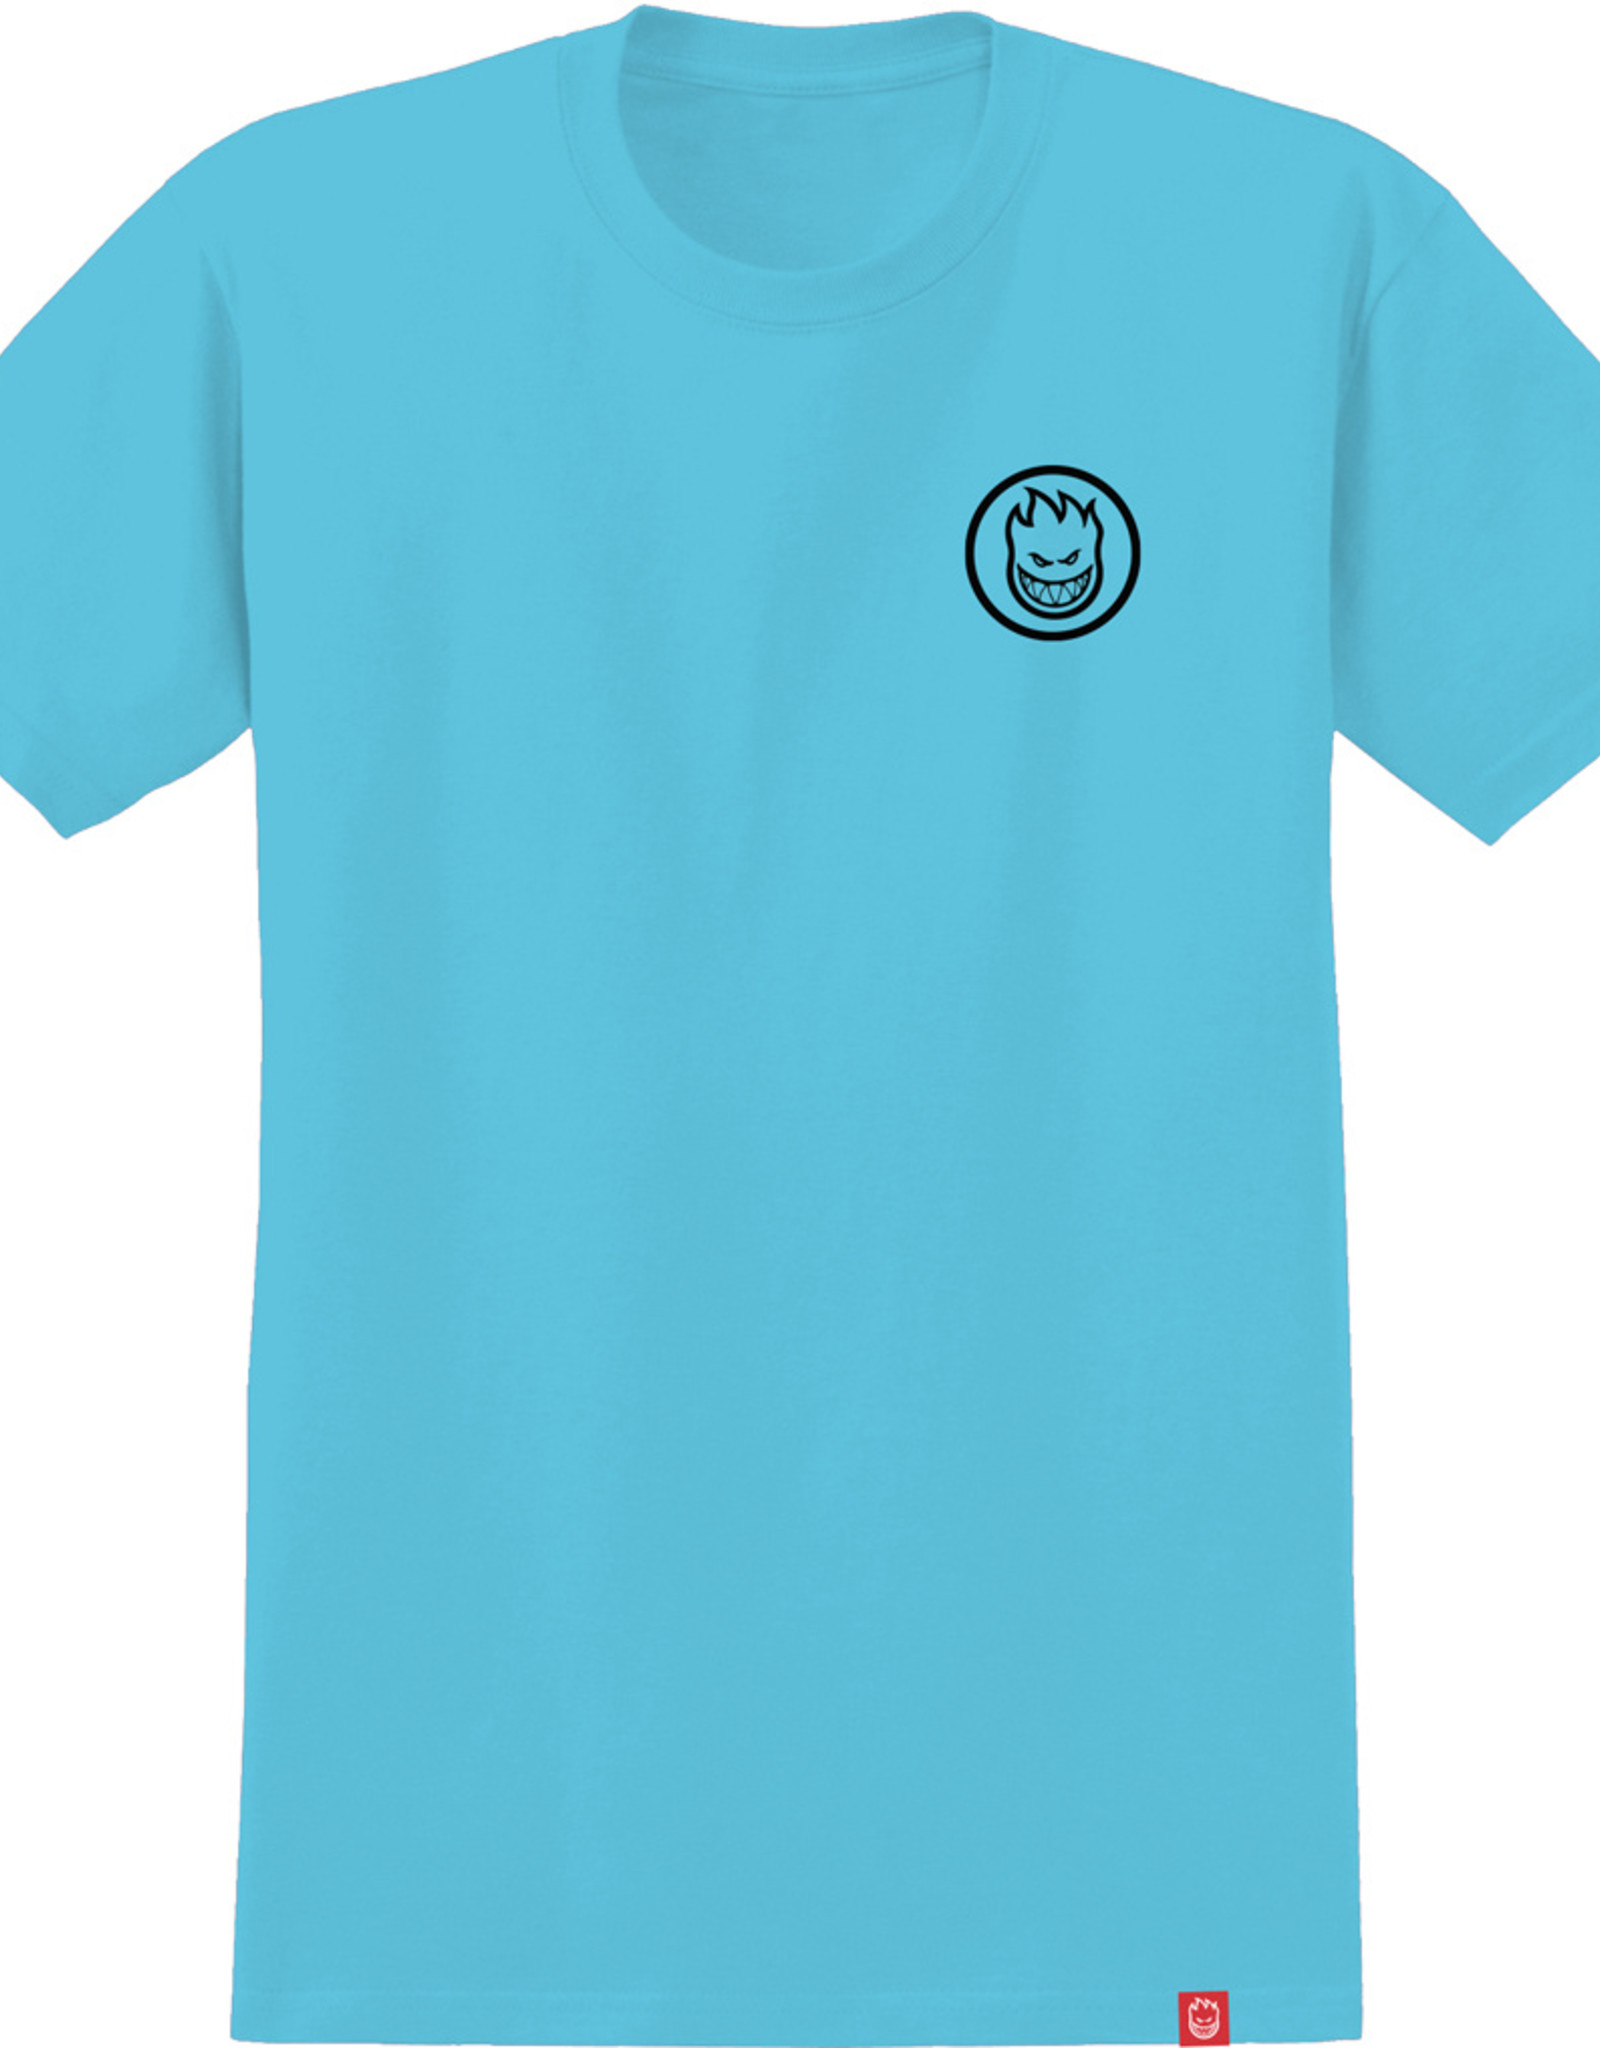 Spitfire SPITFIRE CLASSIC SWIRL YOUTH SS TEE